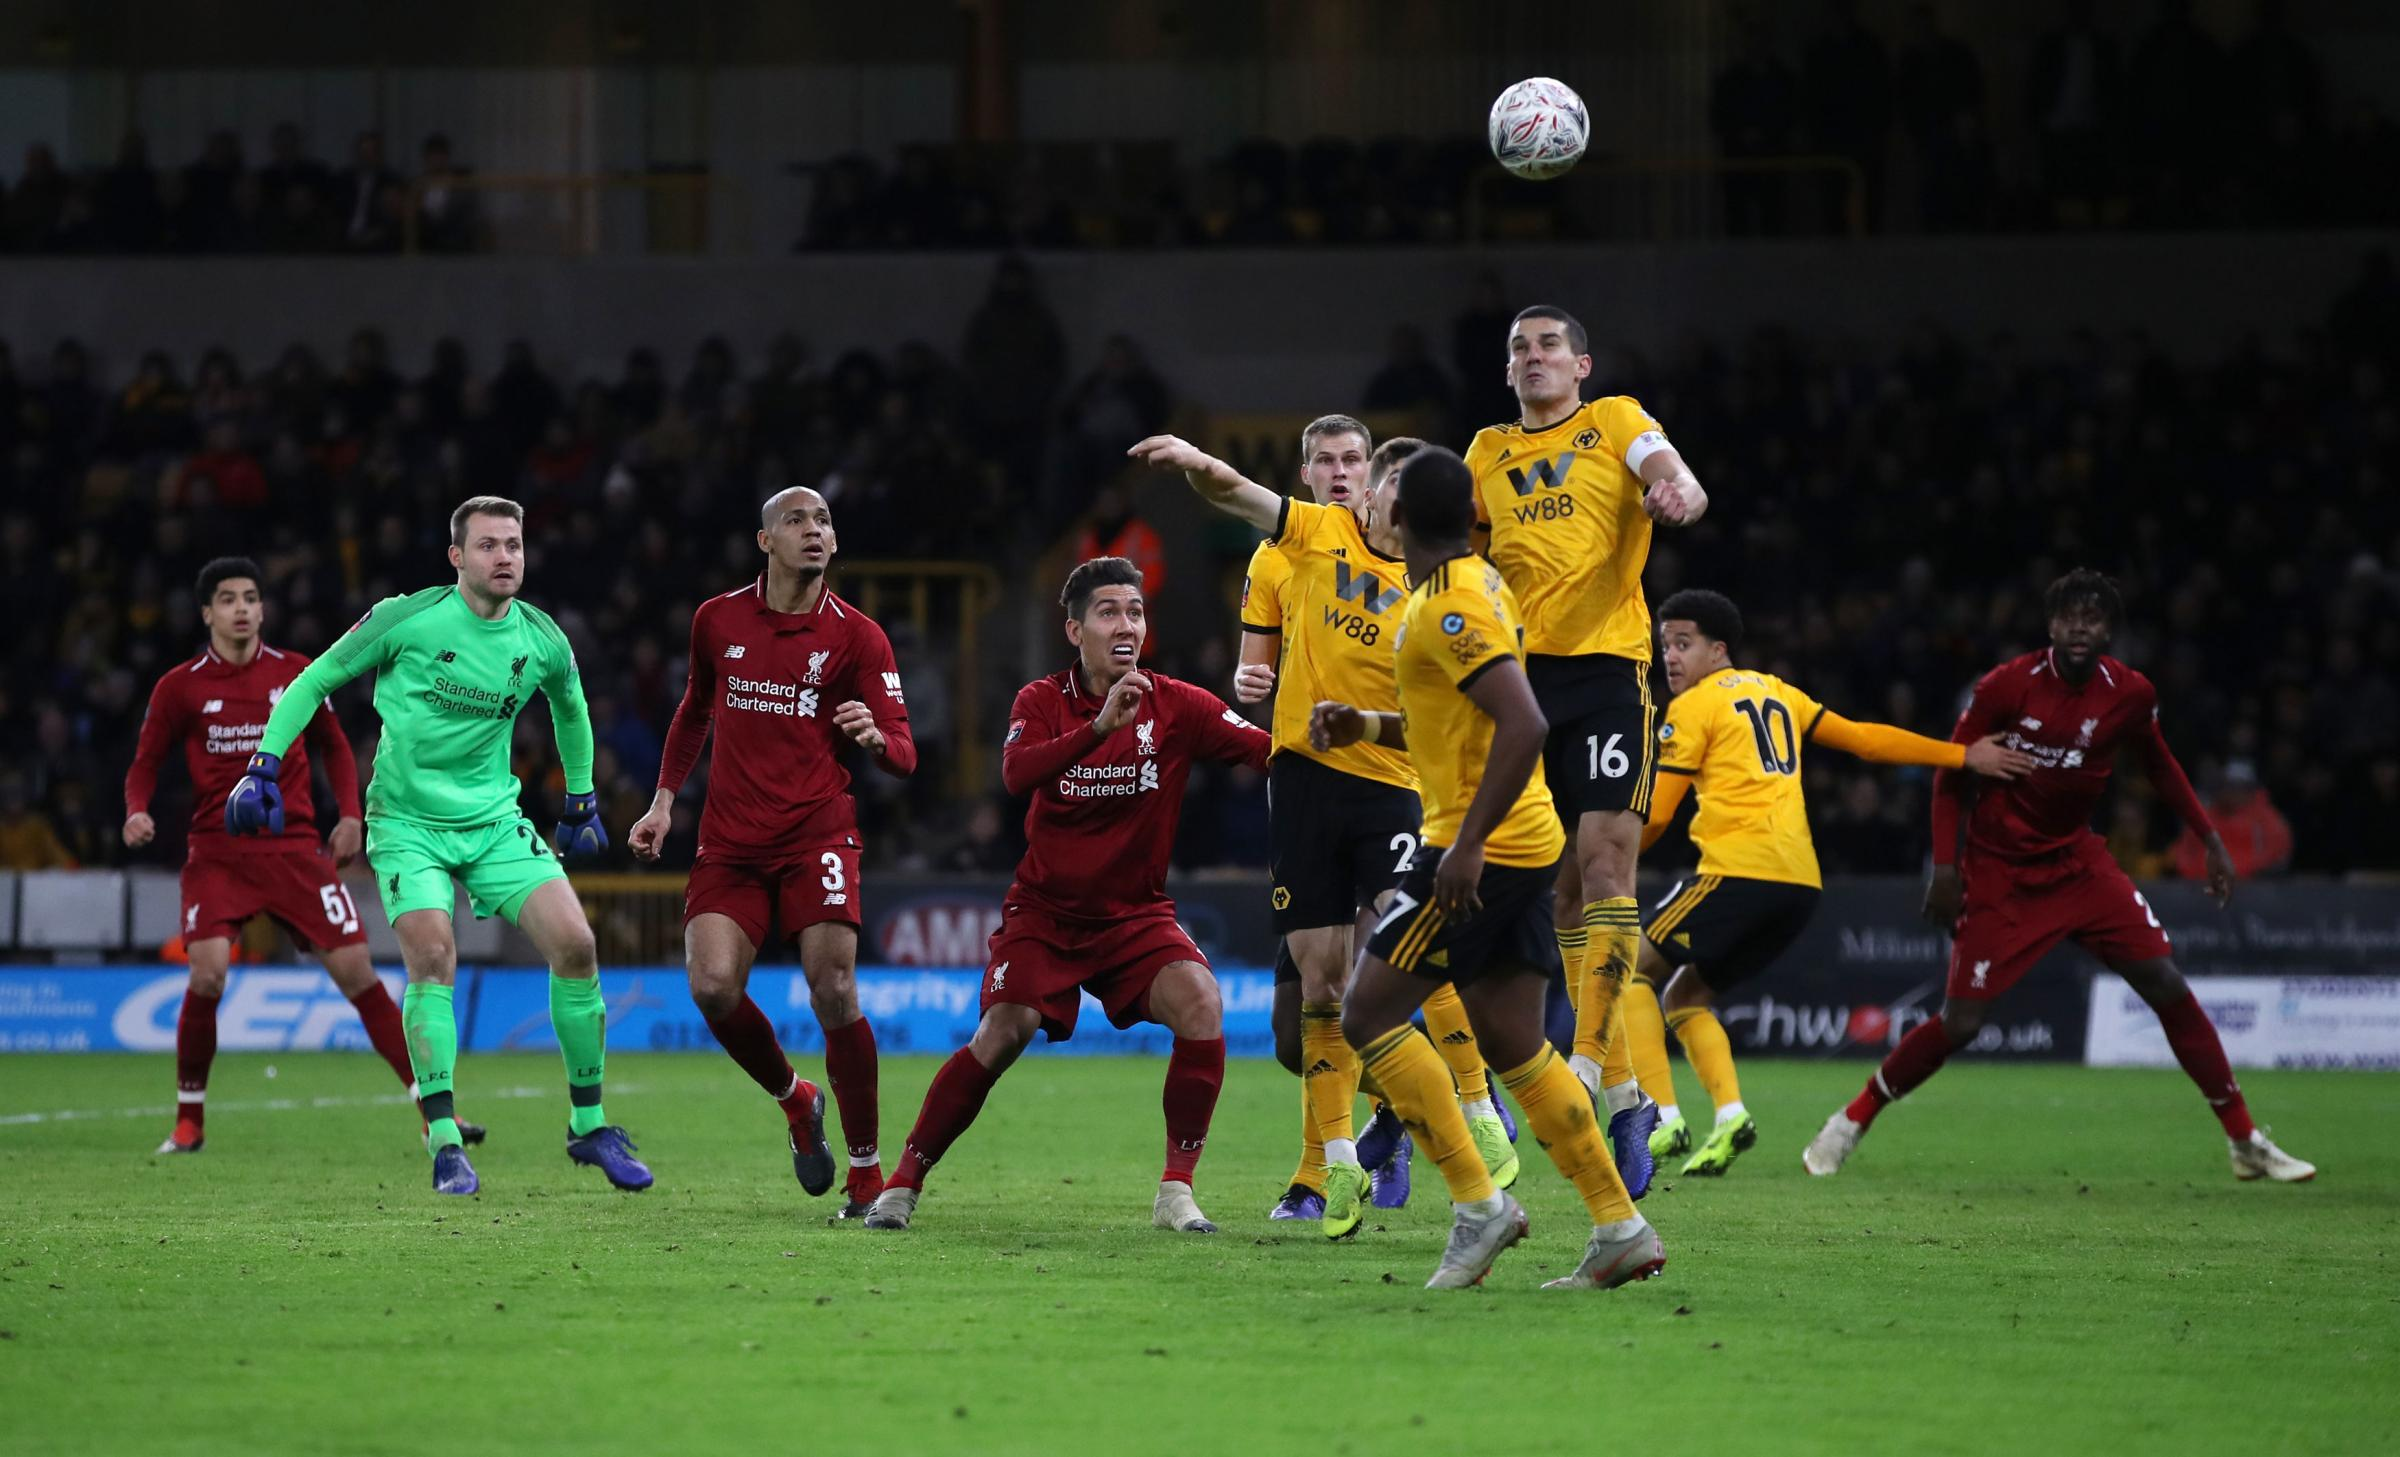 Liverpool goalkeeper Simon Mignolet (second left) comes up for a Liverpool corner in the final minutes during the Emirates FA Cup, third round match at Molineux, Wolverhampton. Conor Coady is number 16.Pic: Nick Potts PA Wire